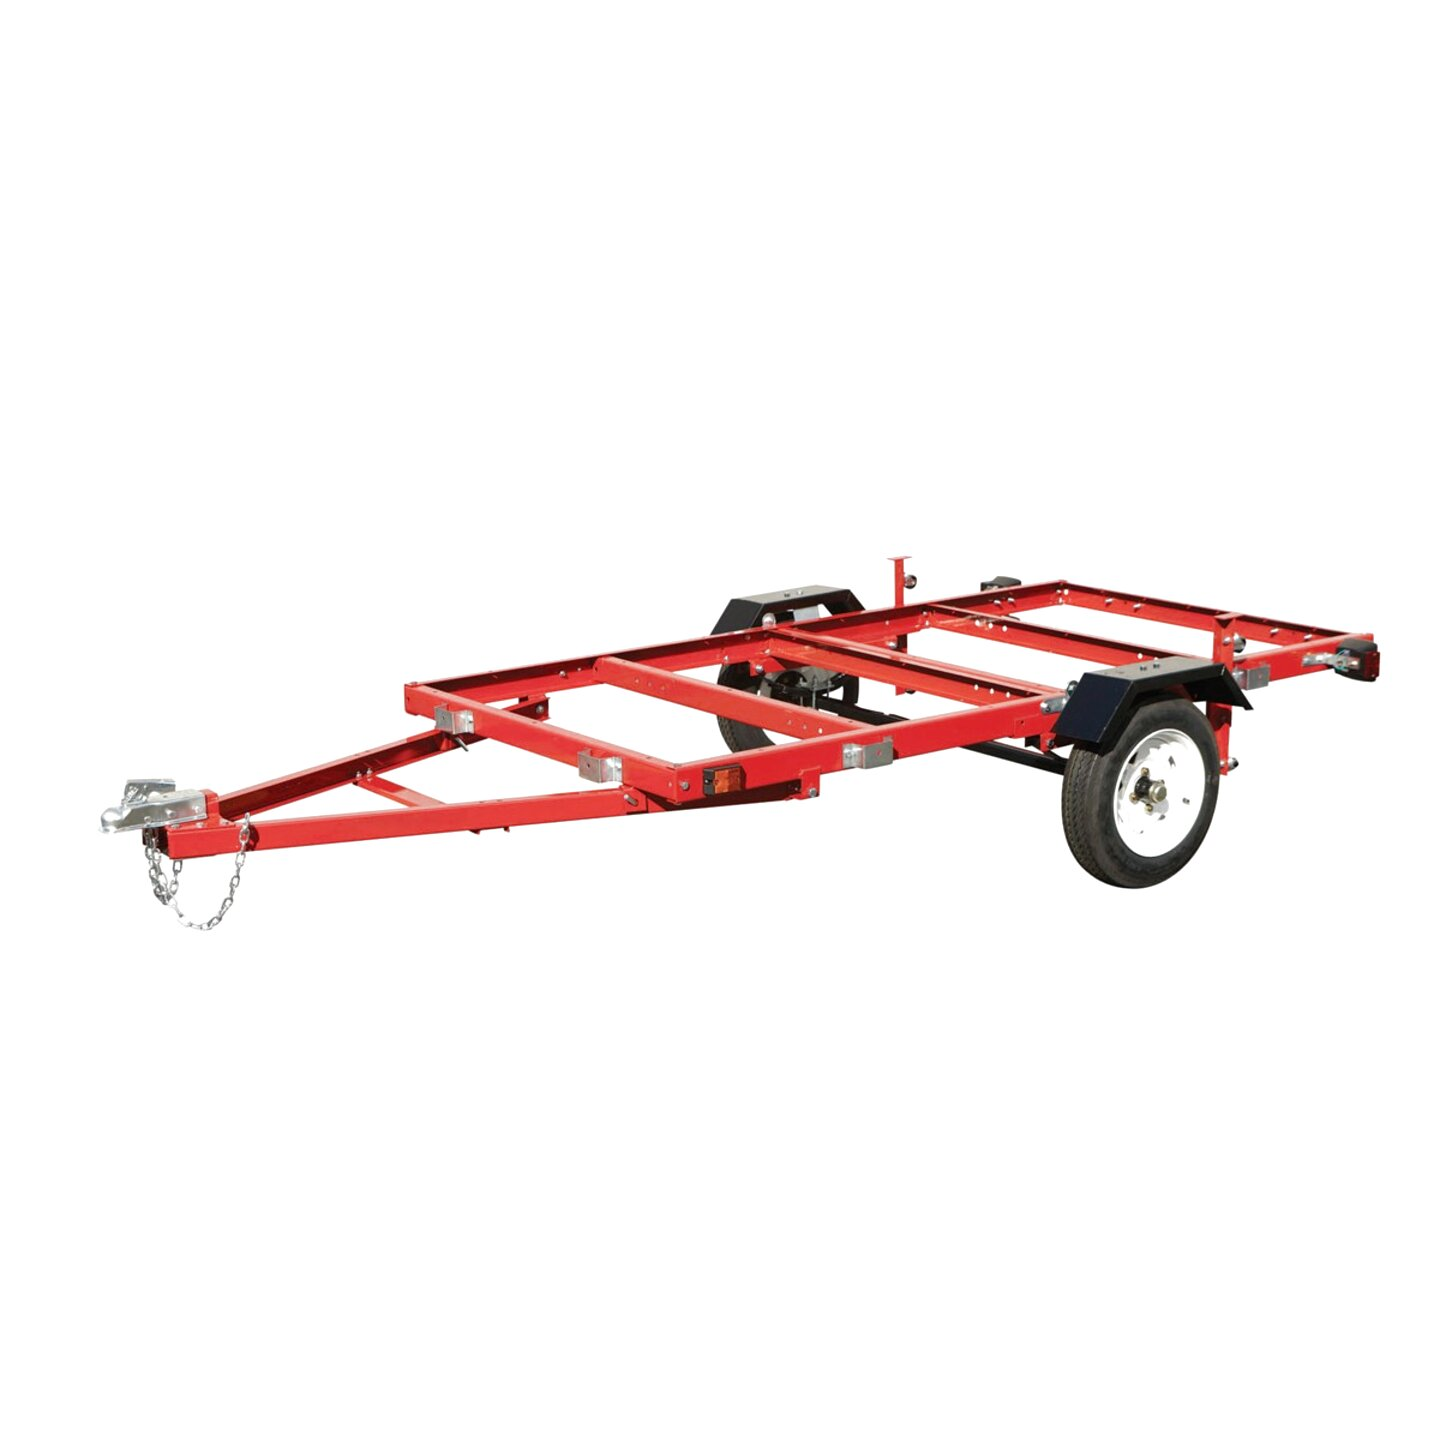 harbor freight trailer for sale